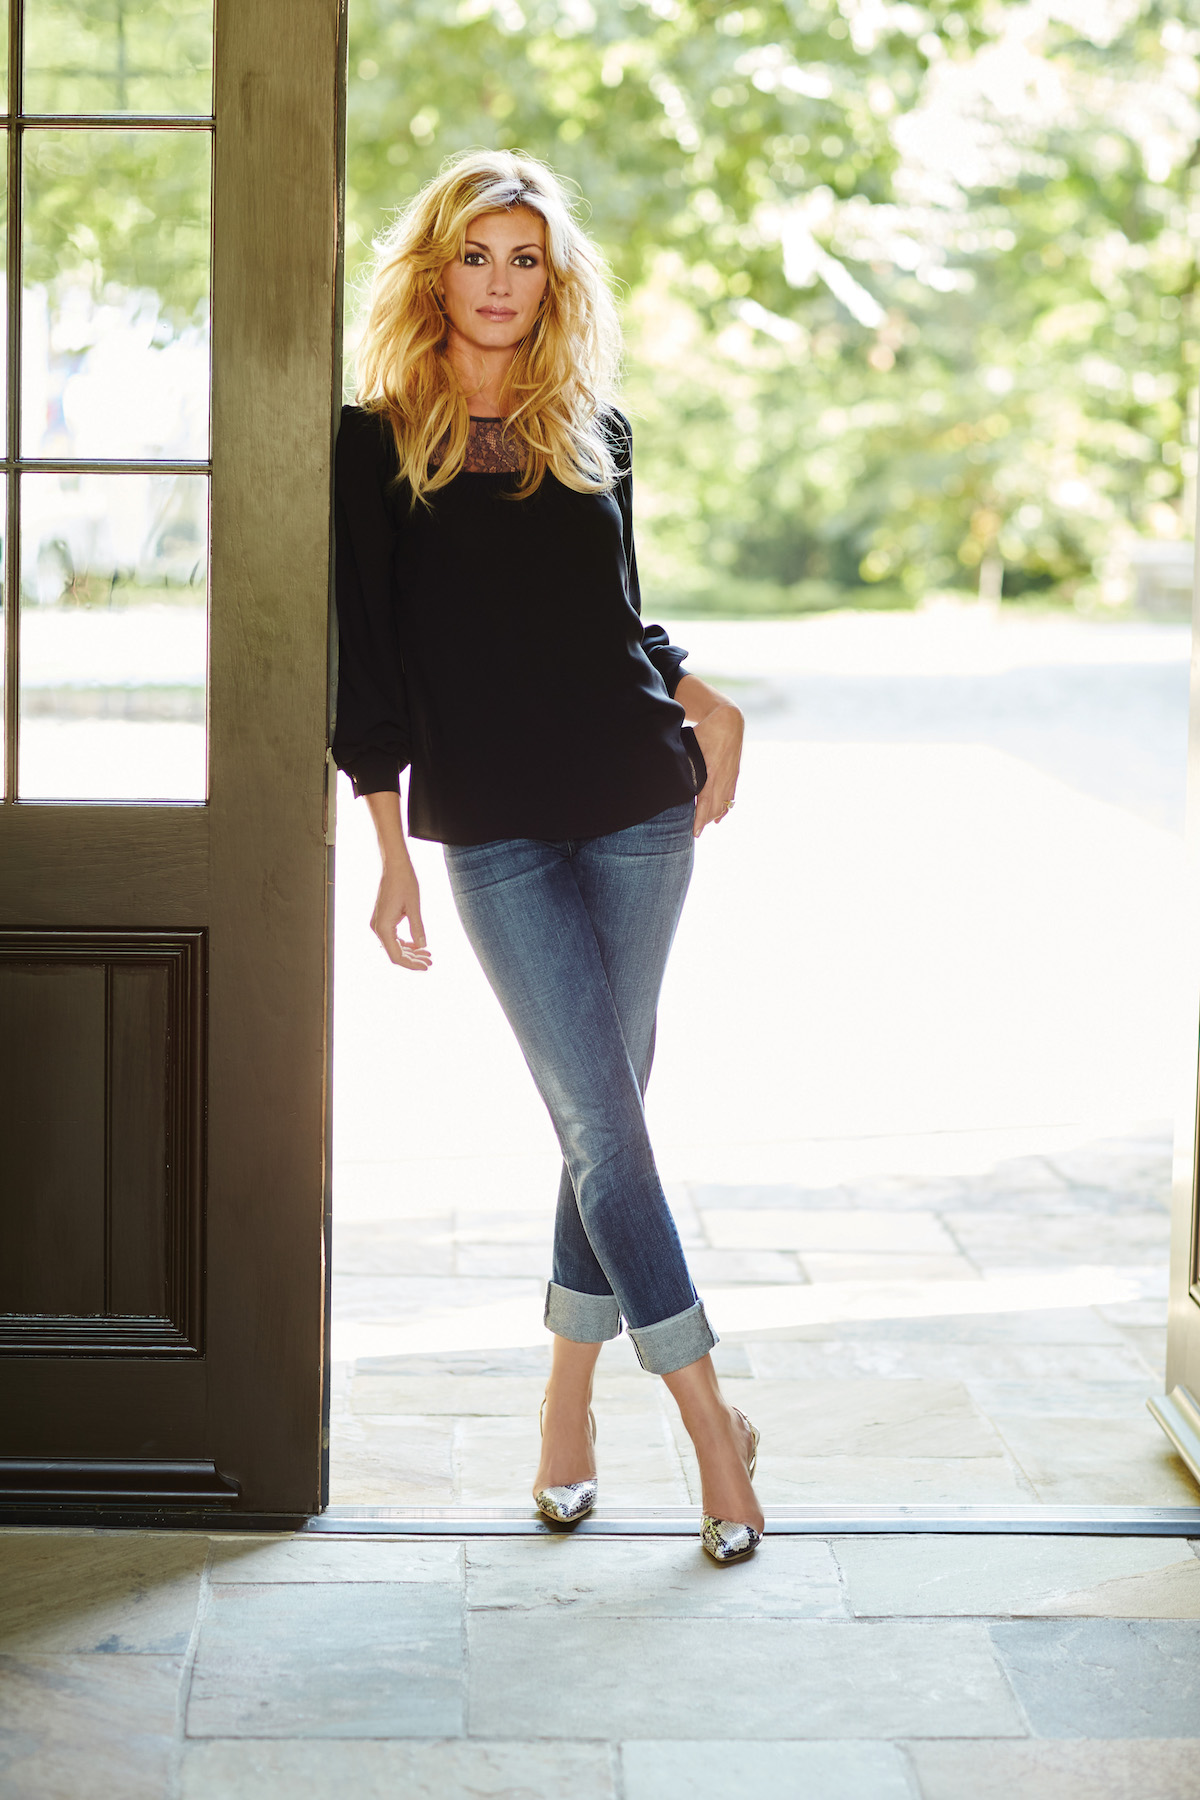 Faith Hill Gets Into The Tv Production Business Noise11 Com